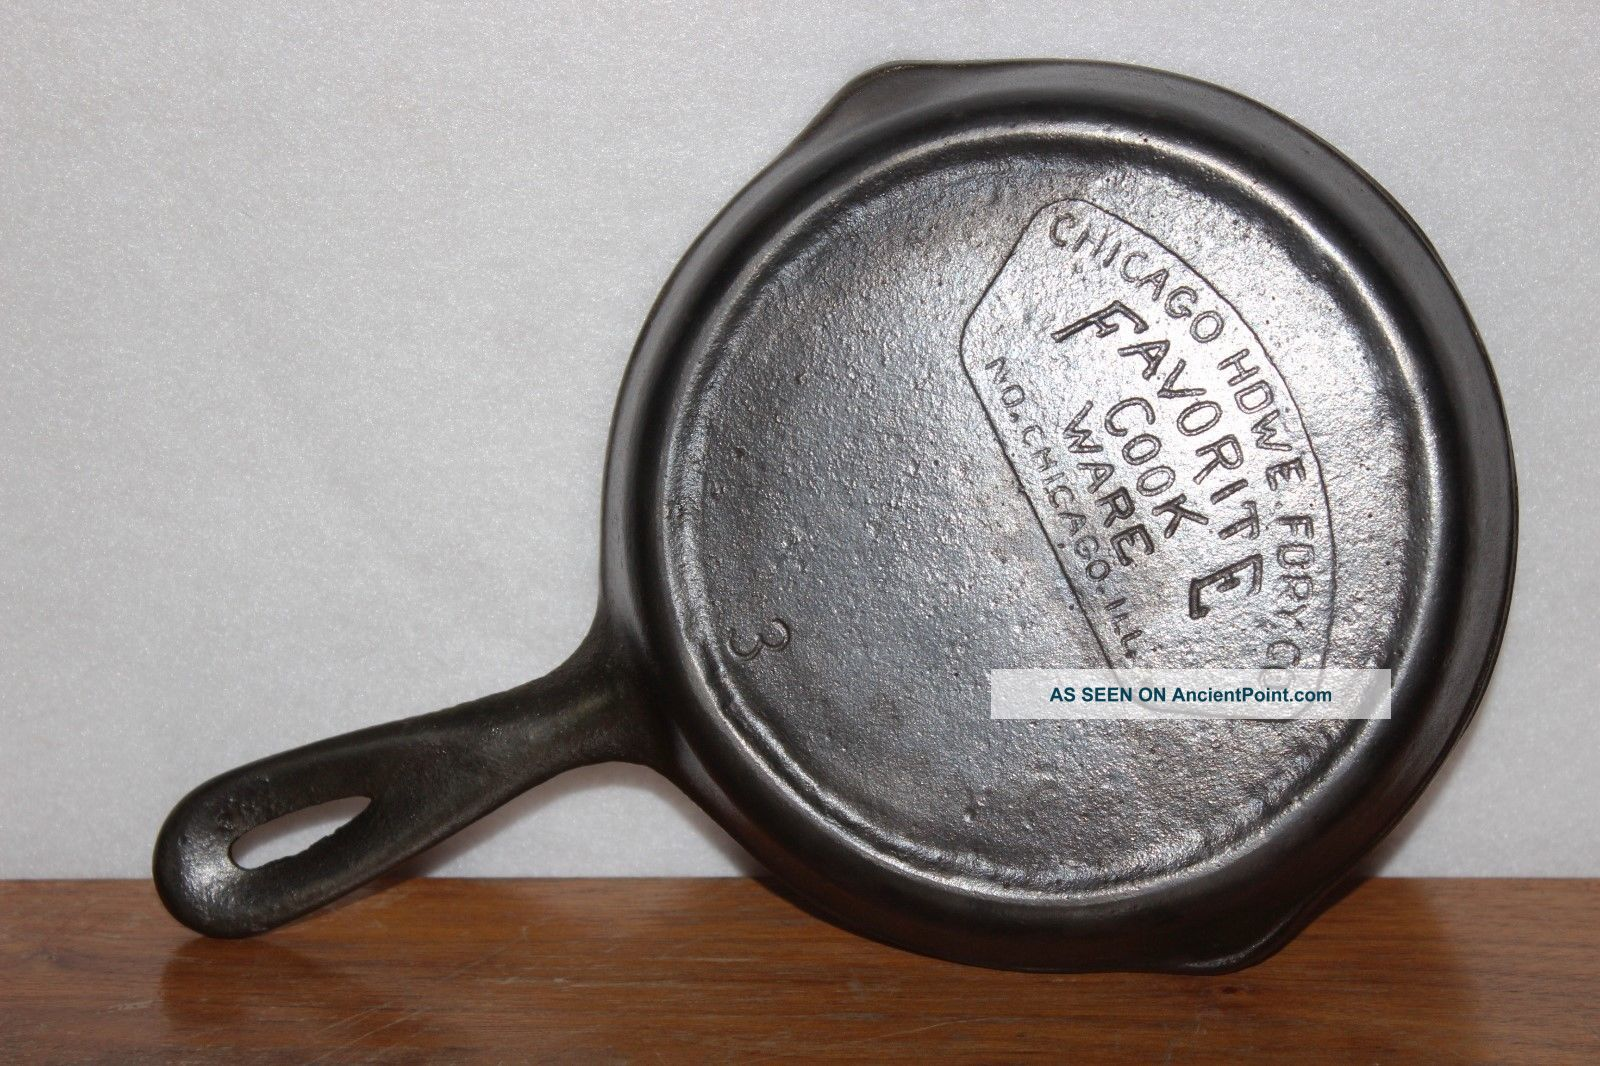 Circa 1934 Favorite Cook Ware 3 Cast Iron Skillet Chicago Hdwe Fdry Co (piqua) Other Antique Home & Hearth photo